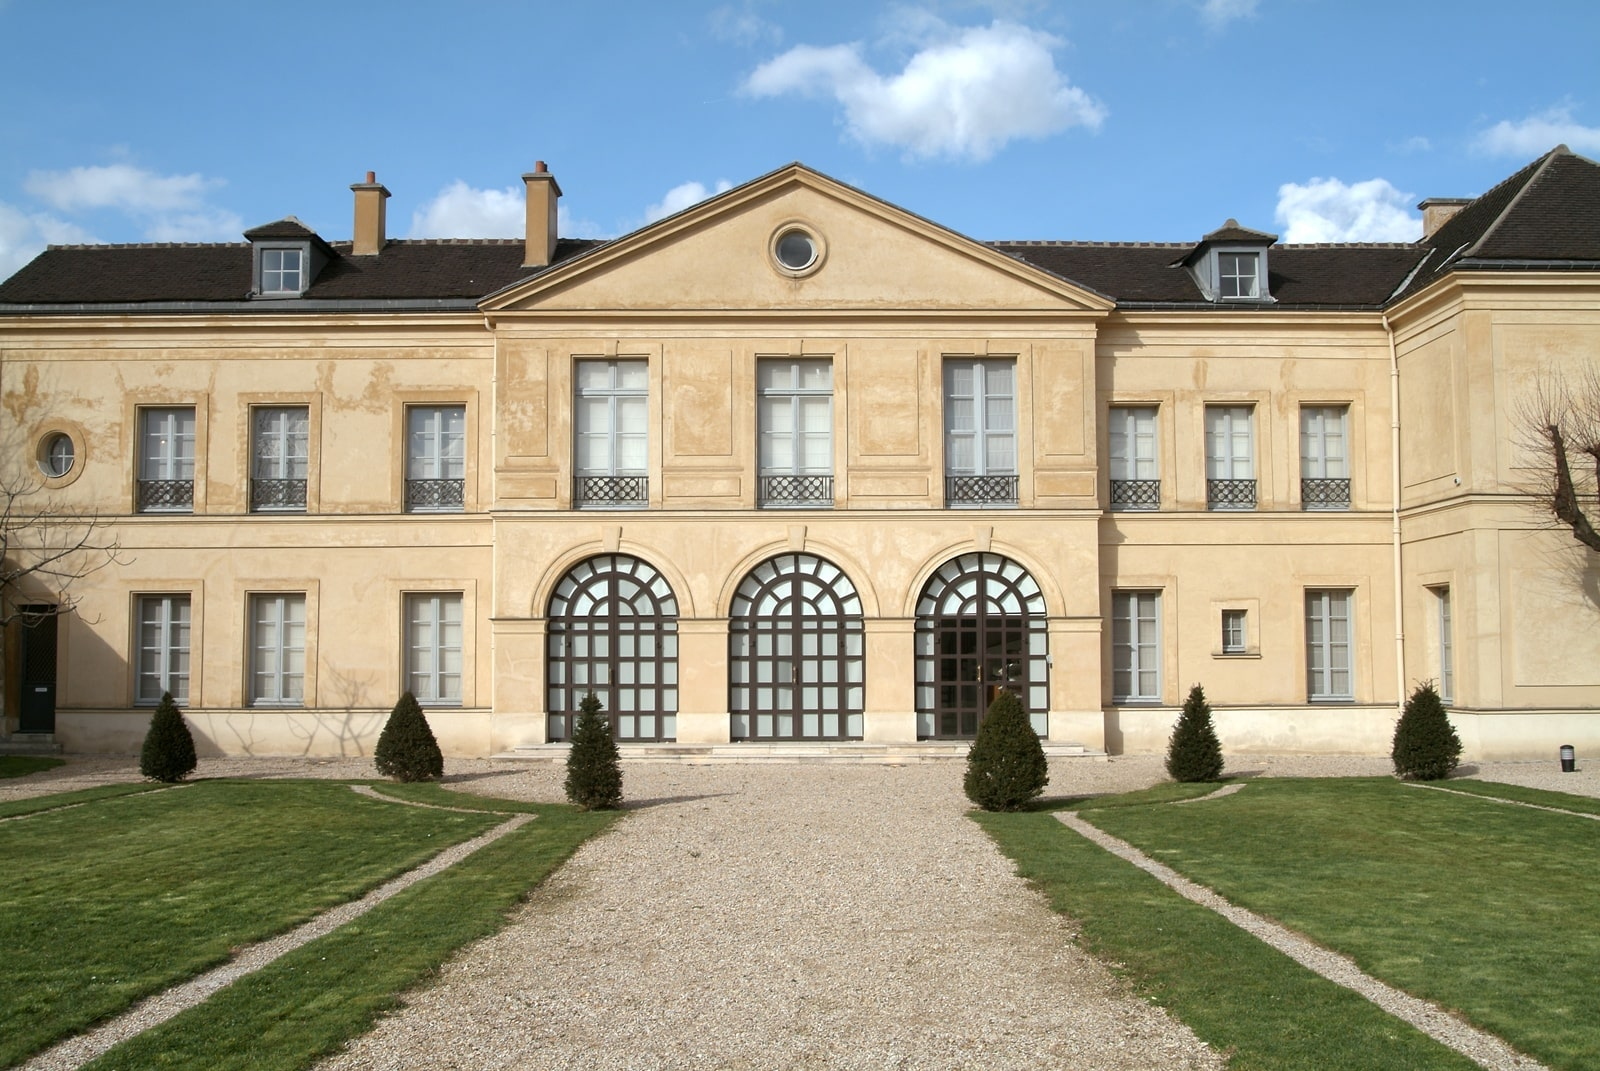 Musee-Maisons-Alfort-4